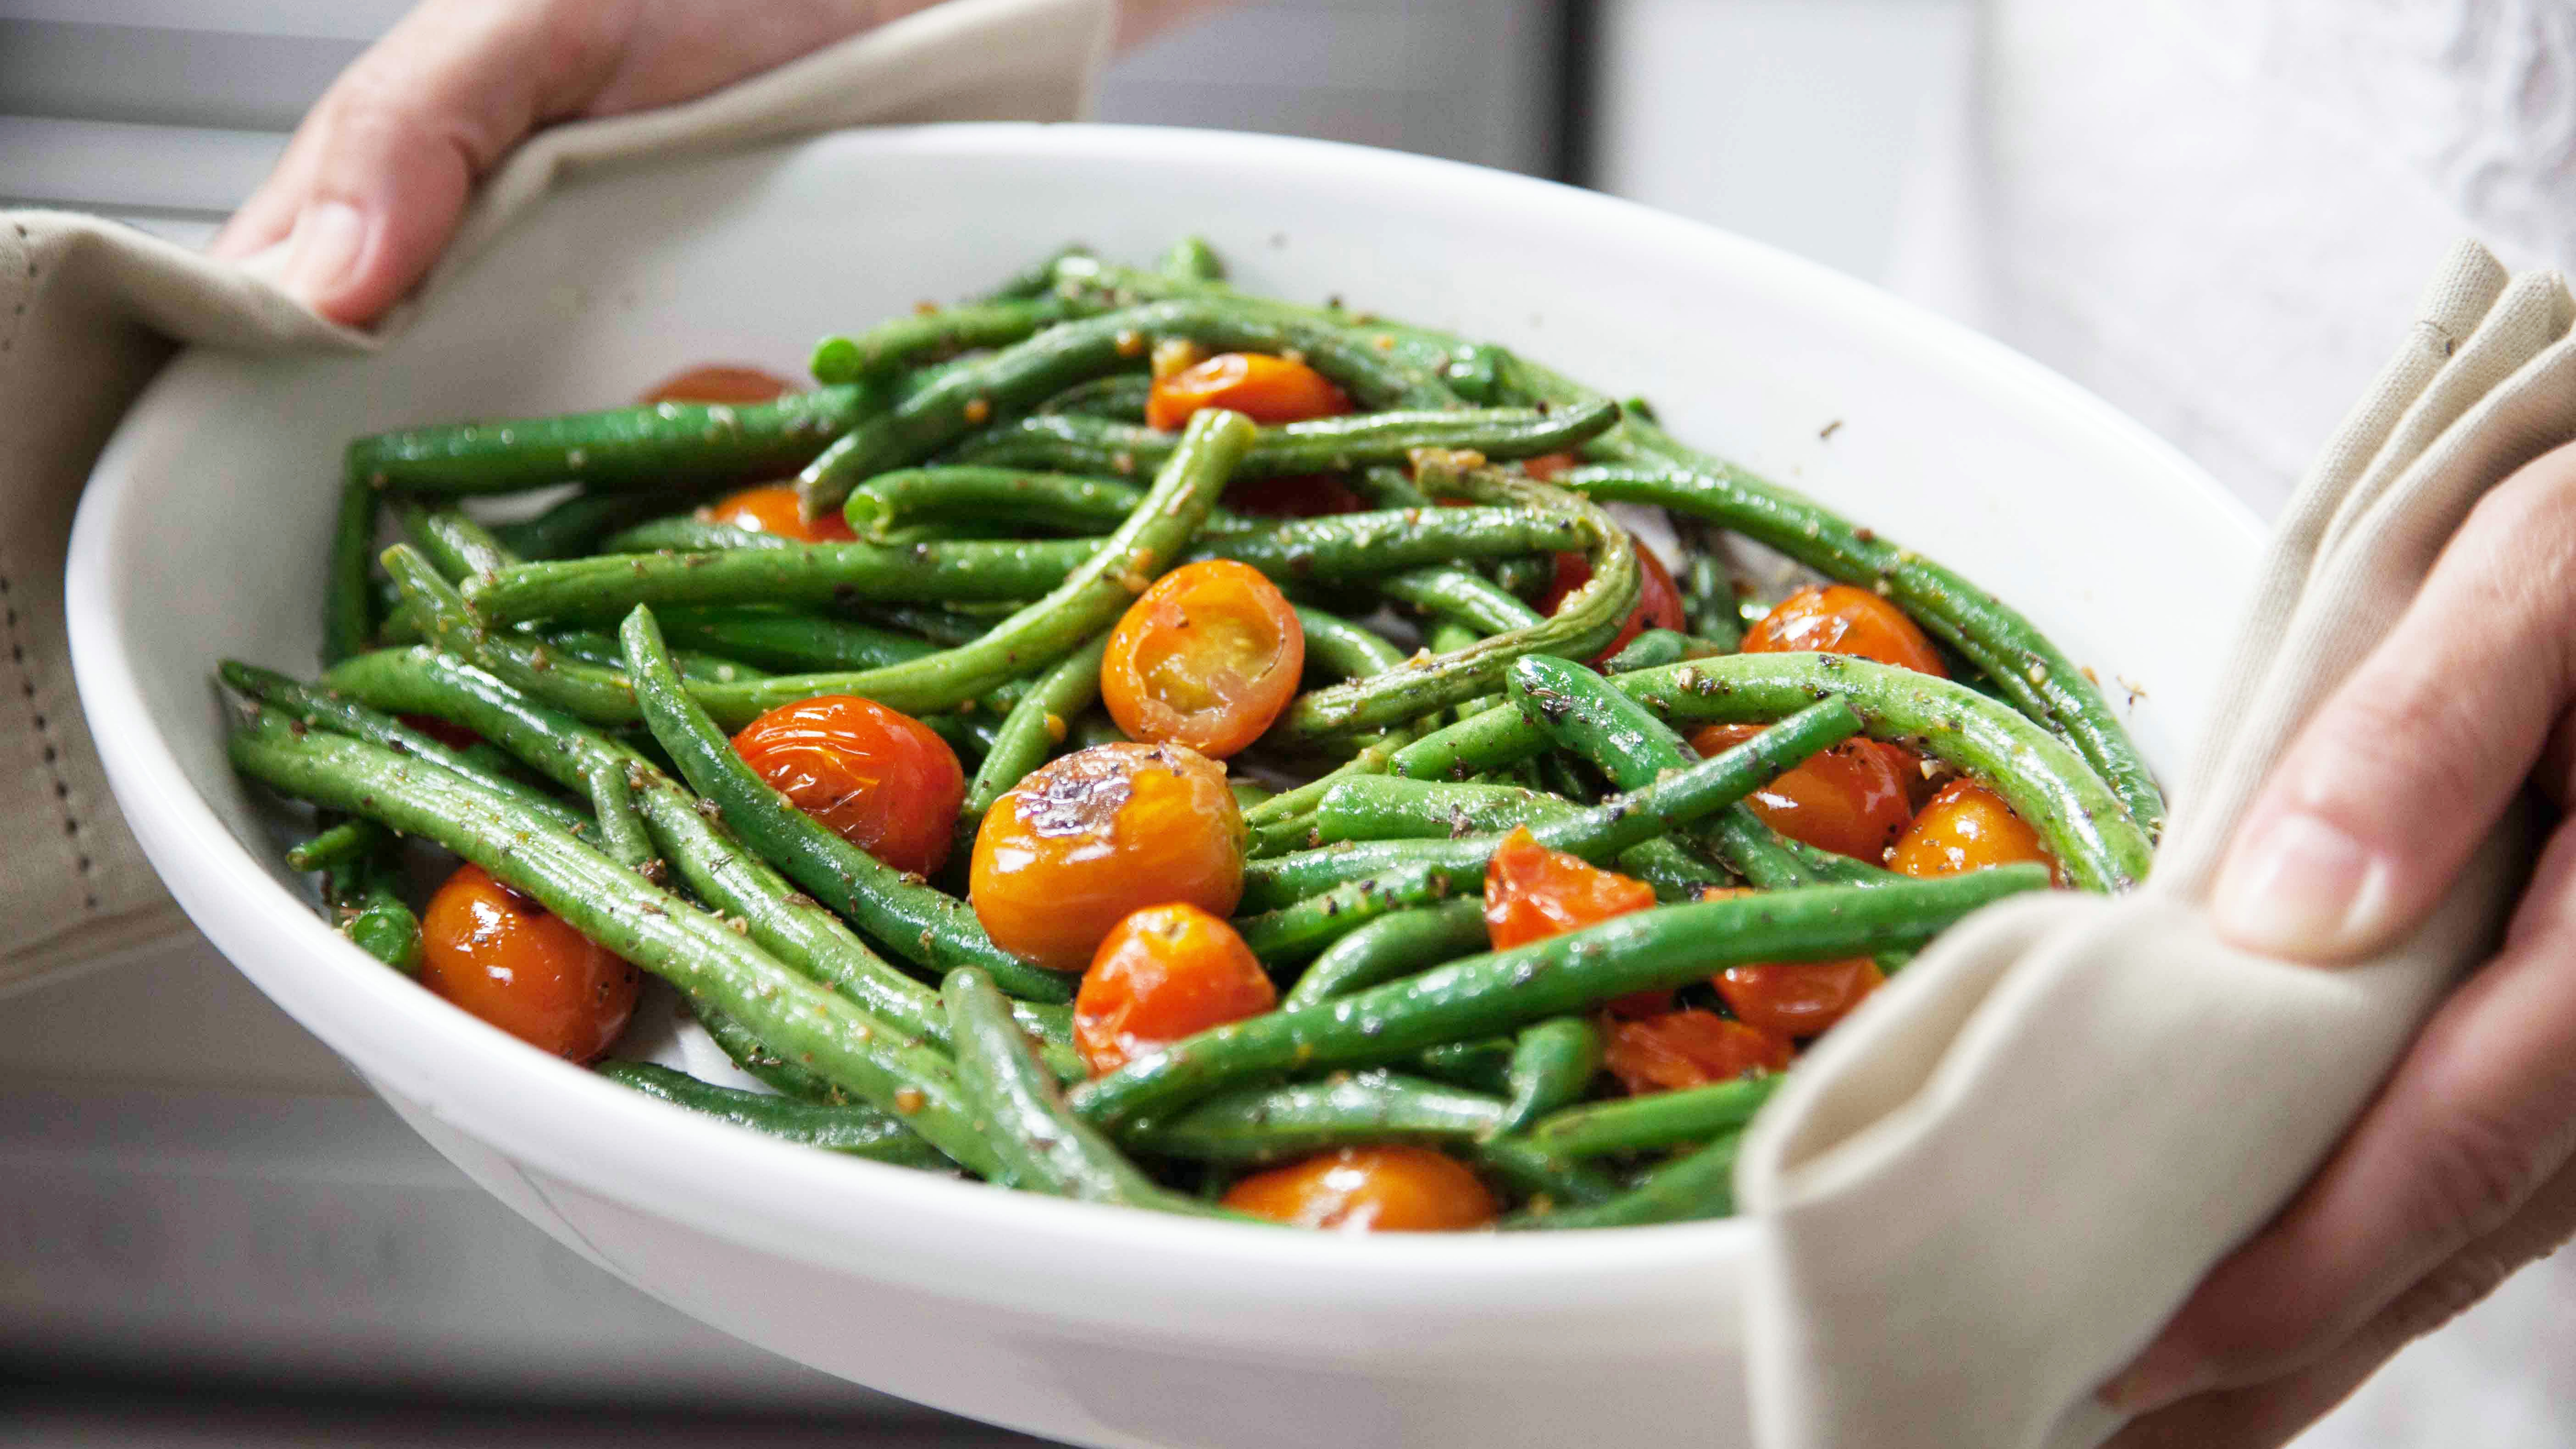 roasted green beans for Making Mayo's Recipes